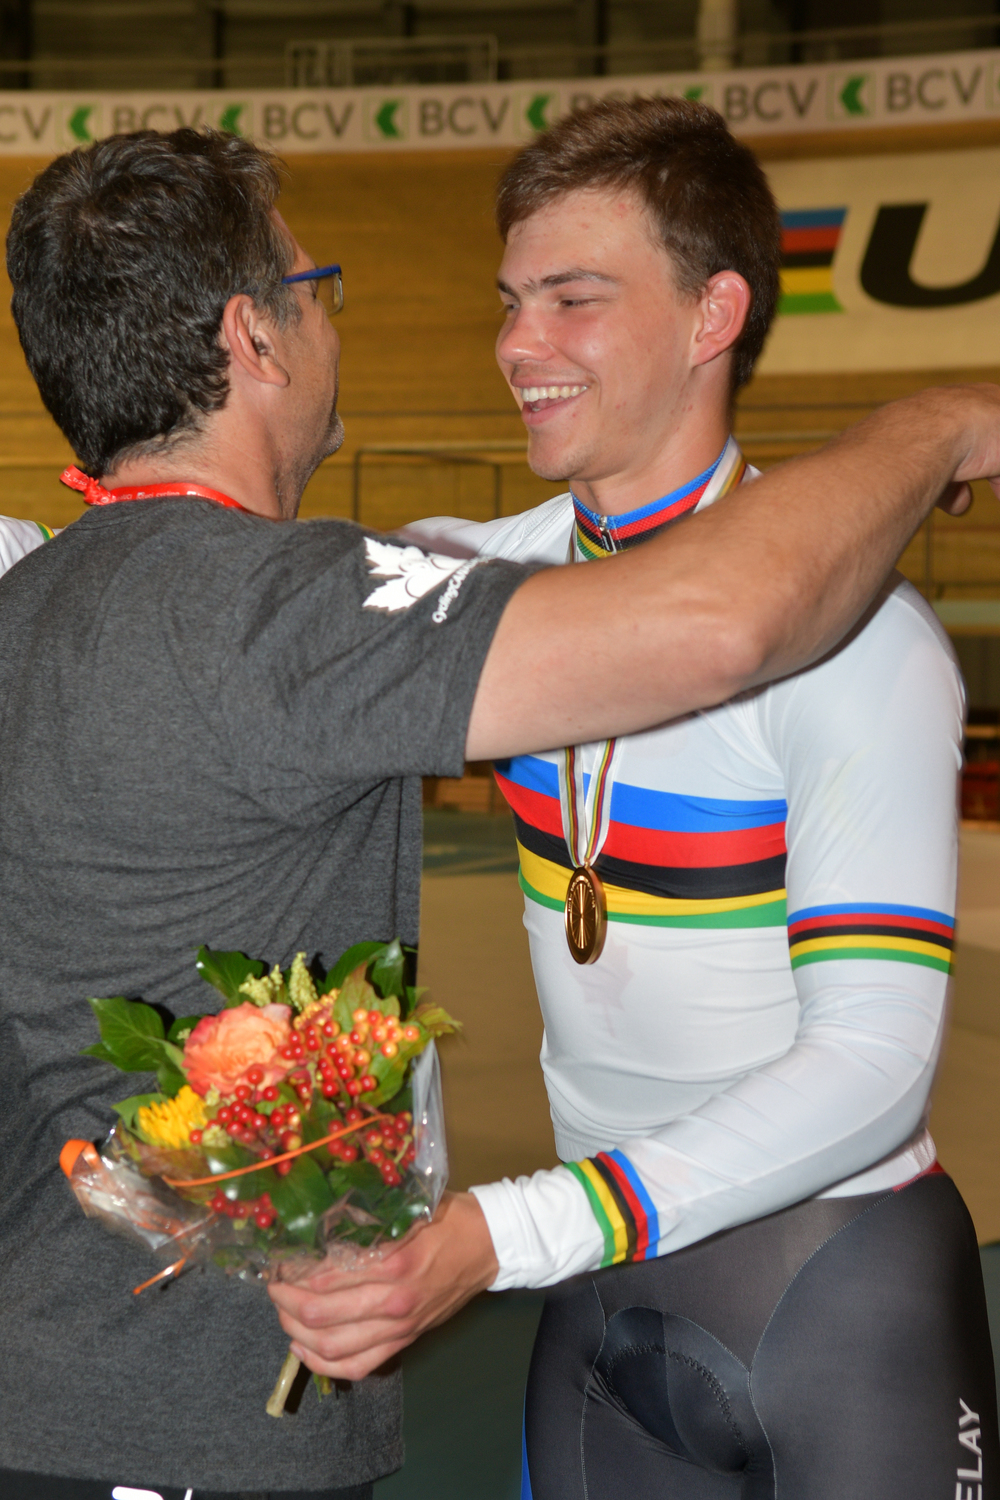 Sharing the victory with his coach - Stefan and Alex